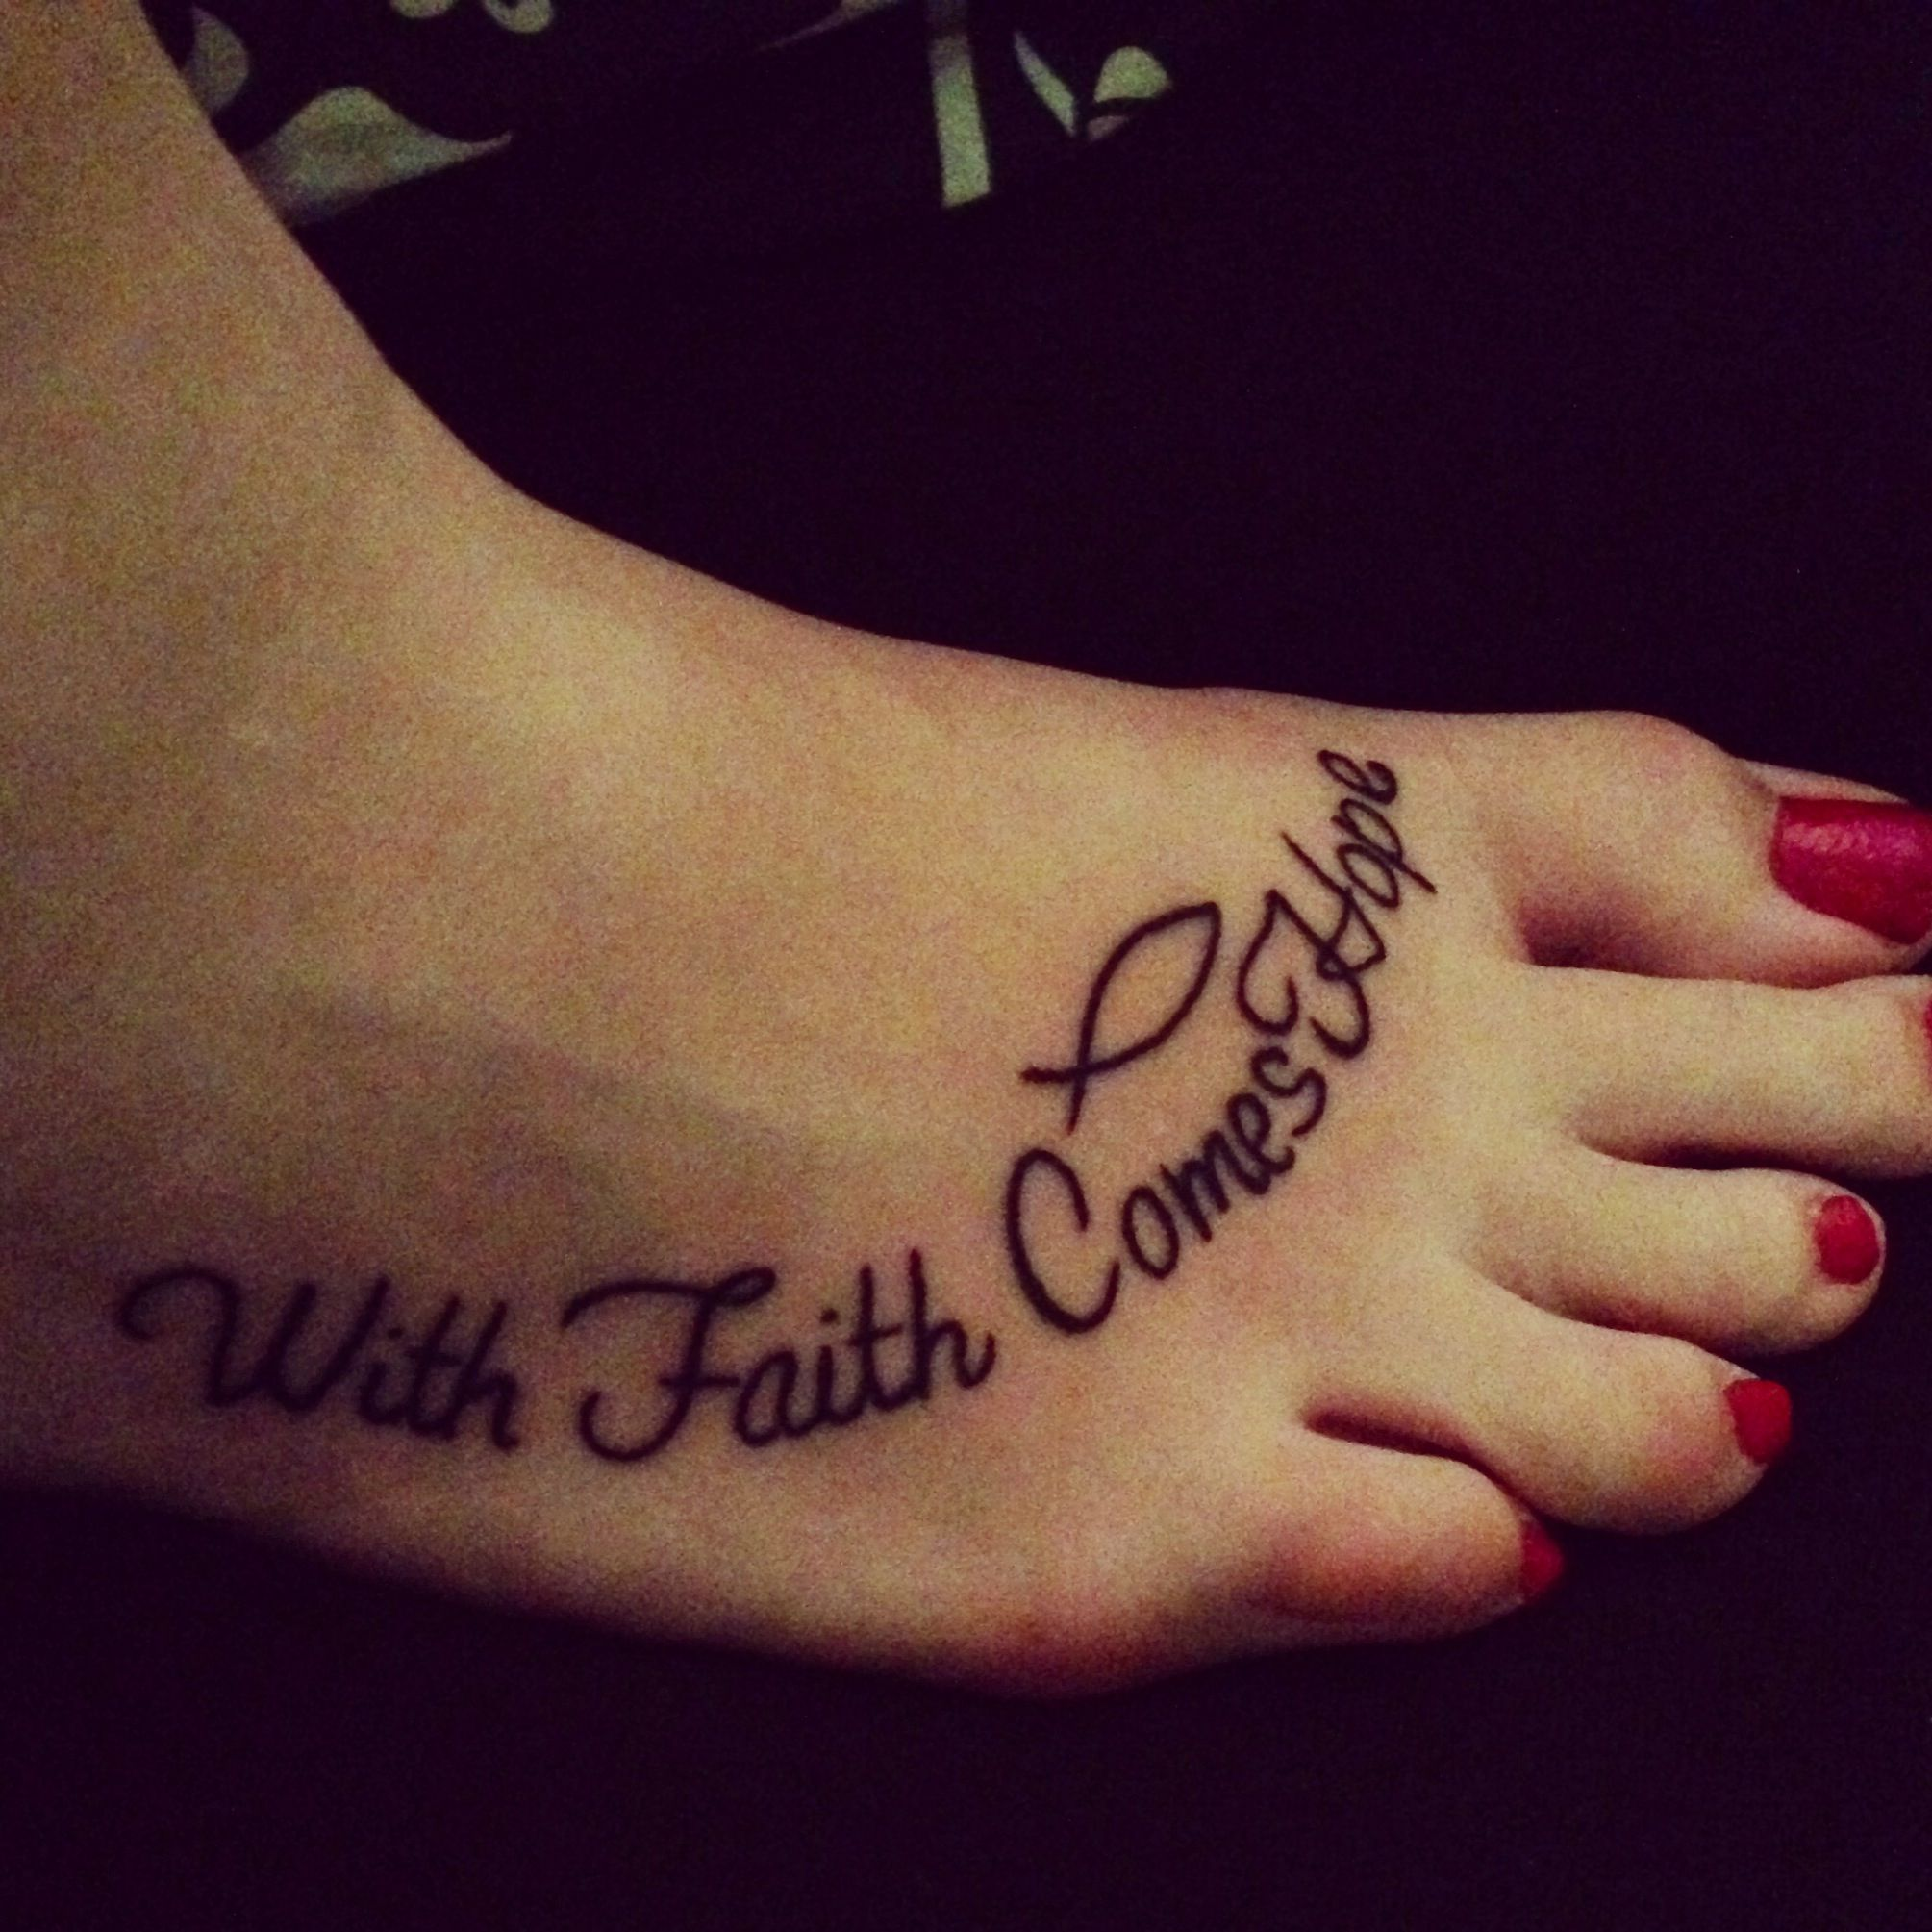 With Faith Comes Hope Foot Tattoo